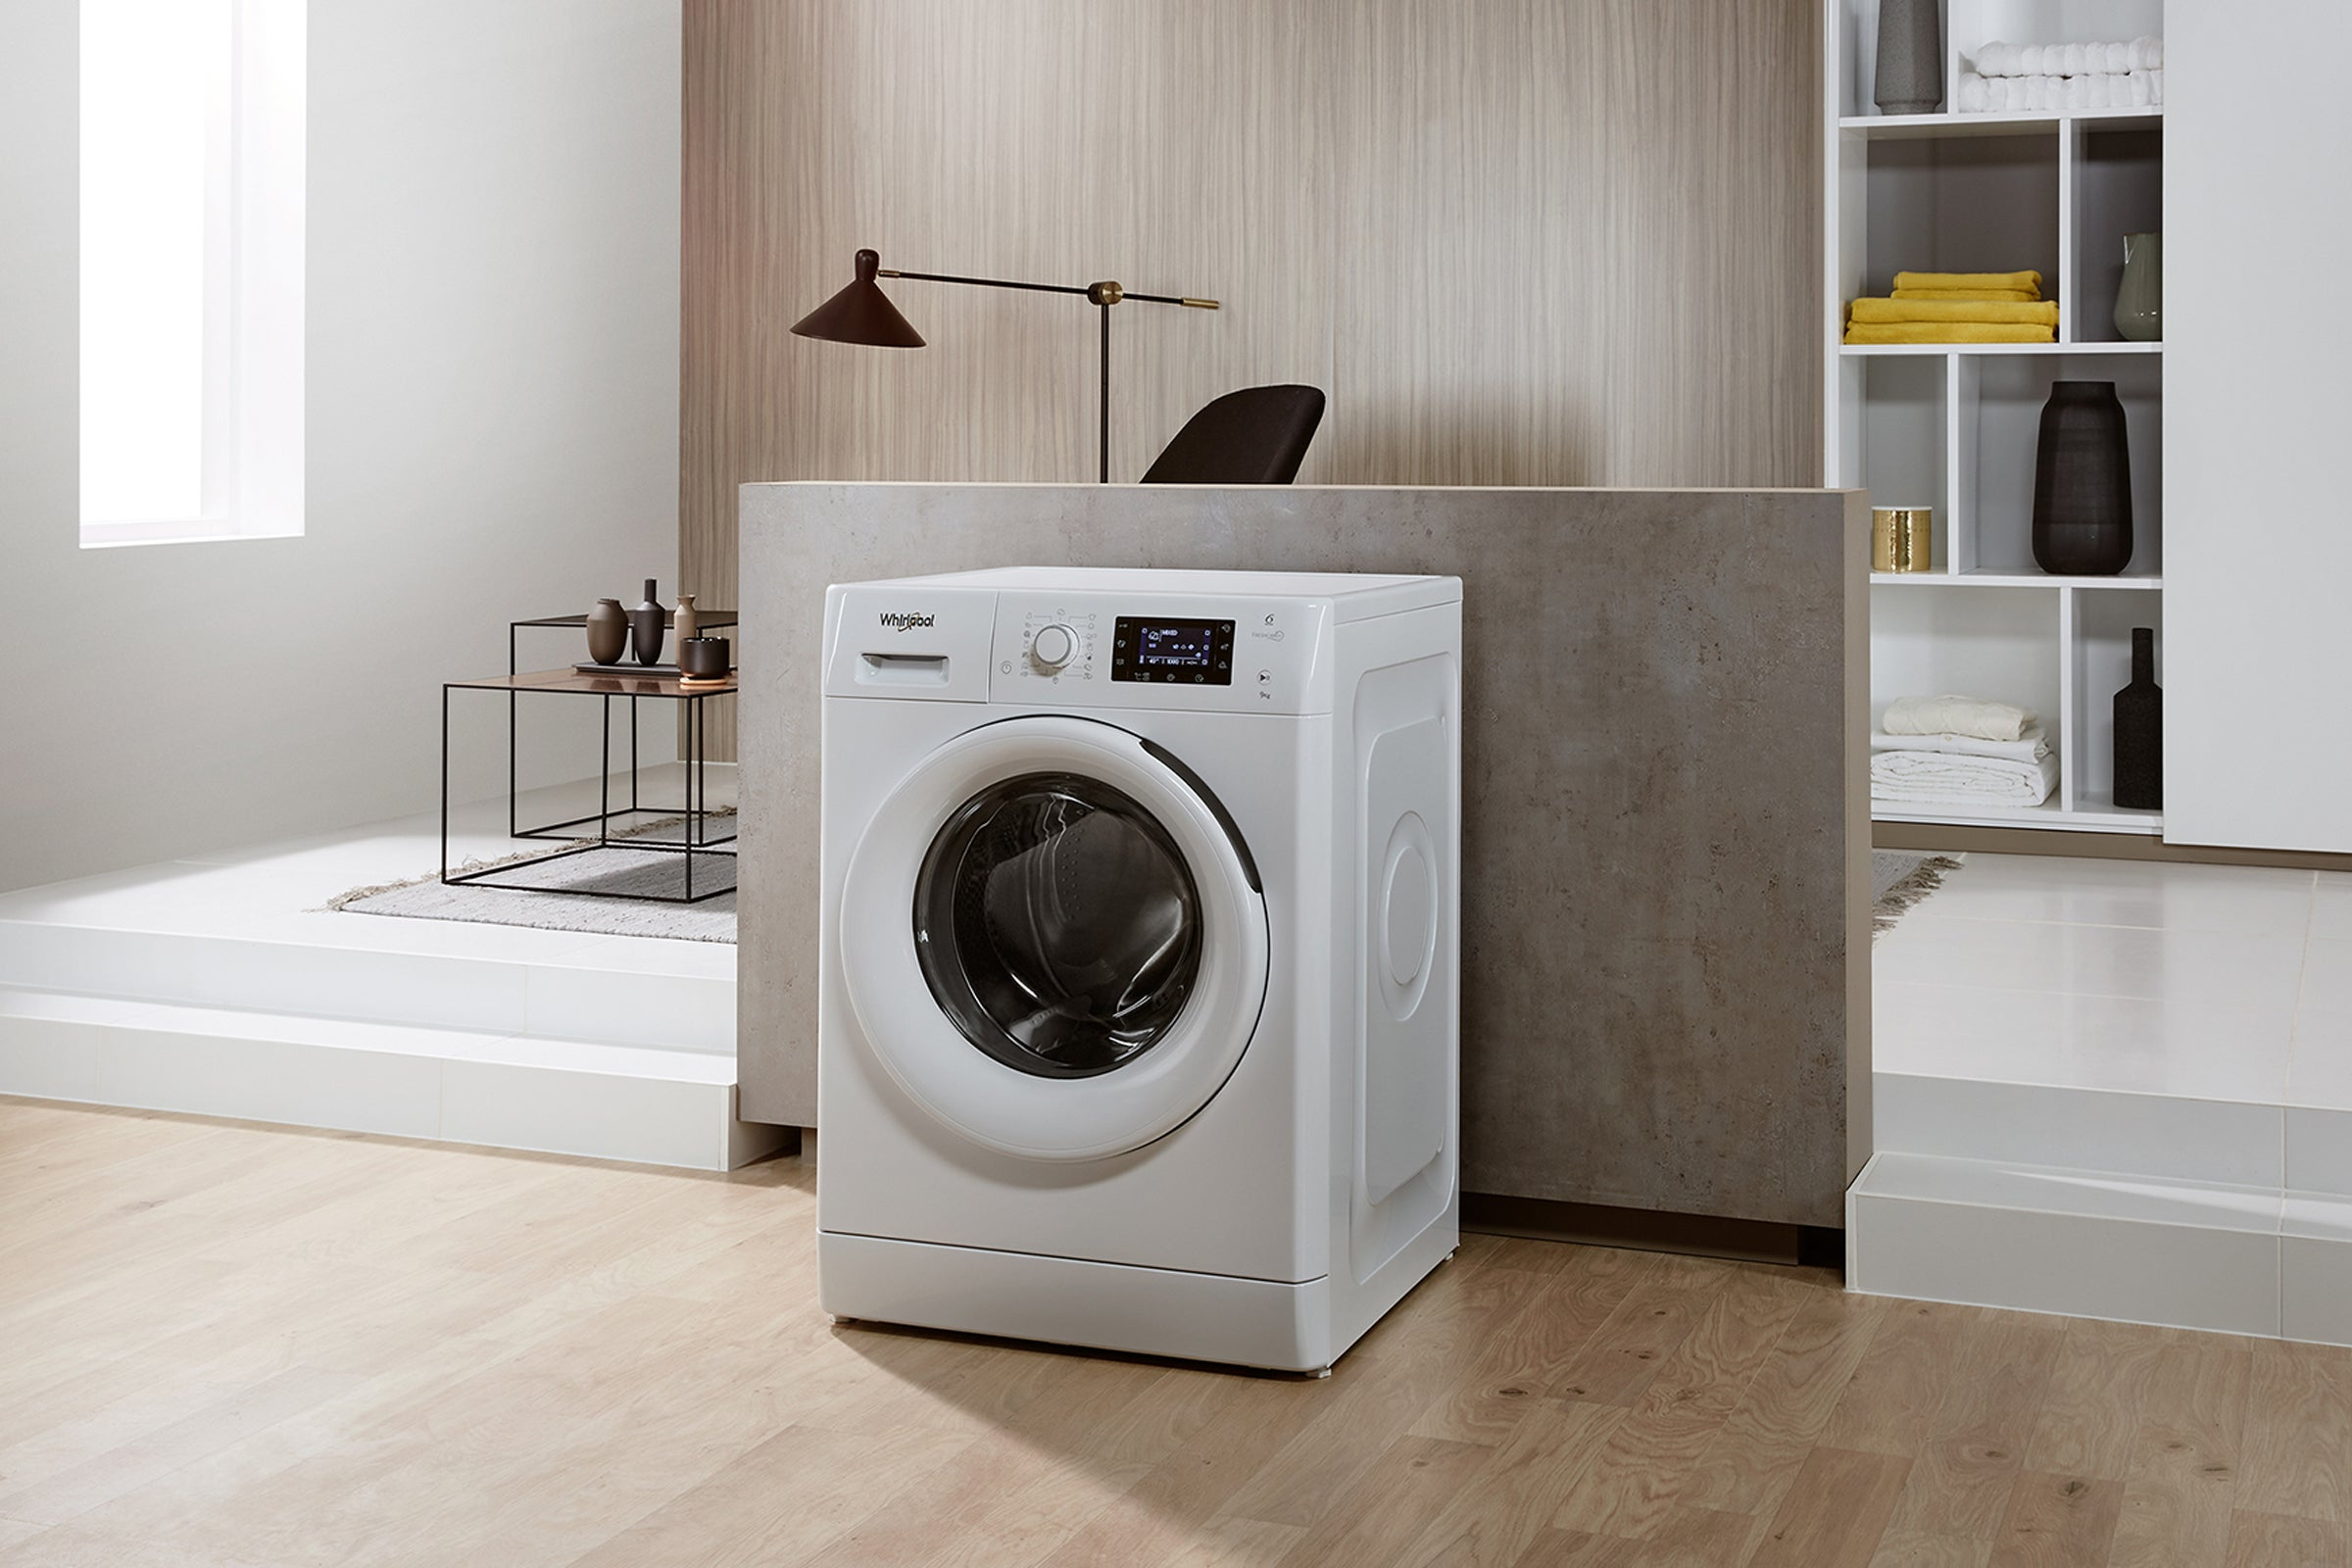 Best washing machine 2019: The top clothes cleaners   Trusted Reviews